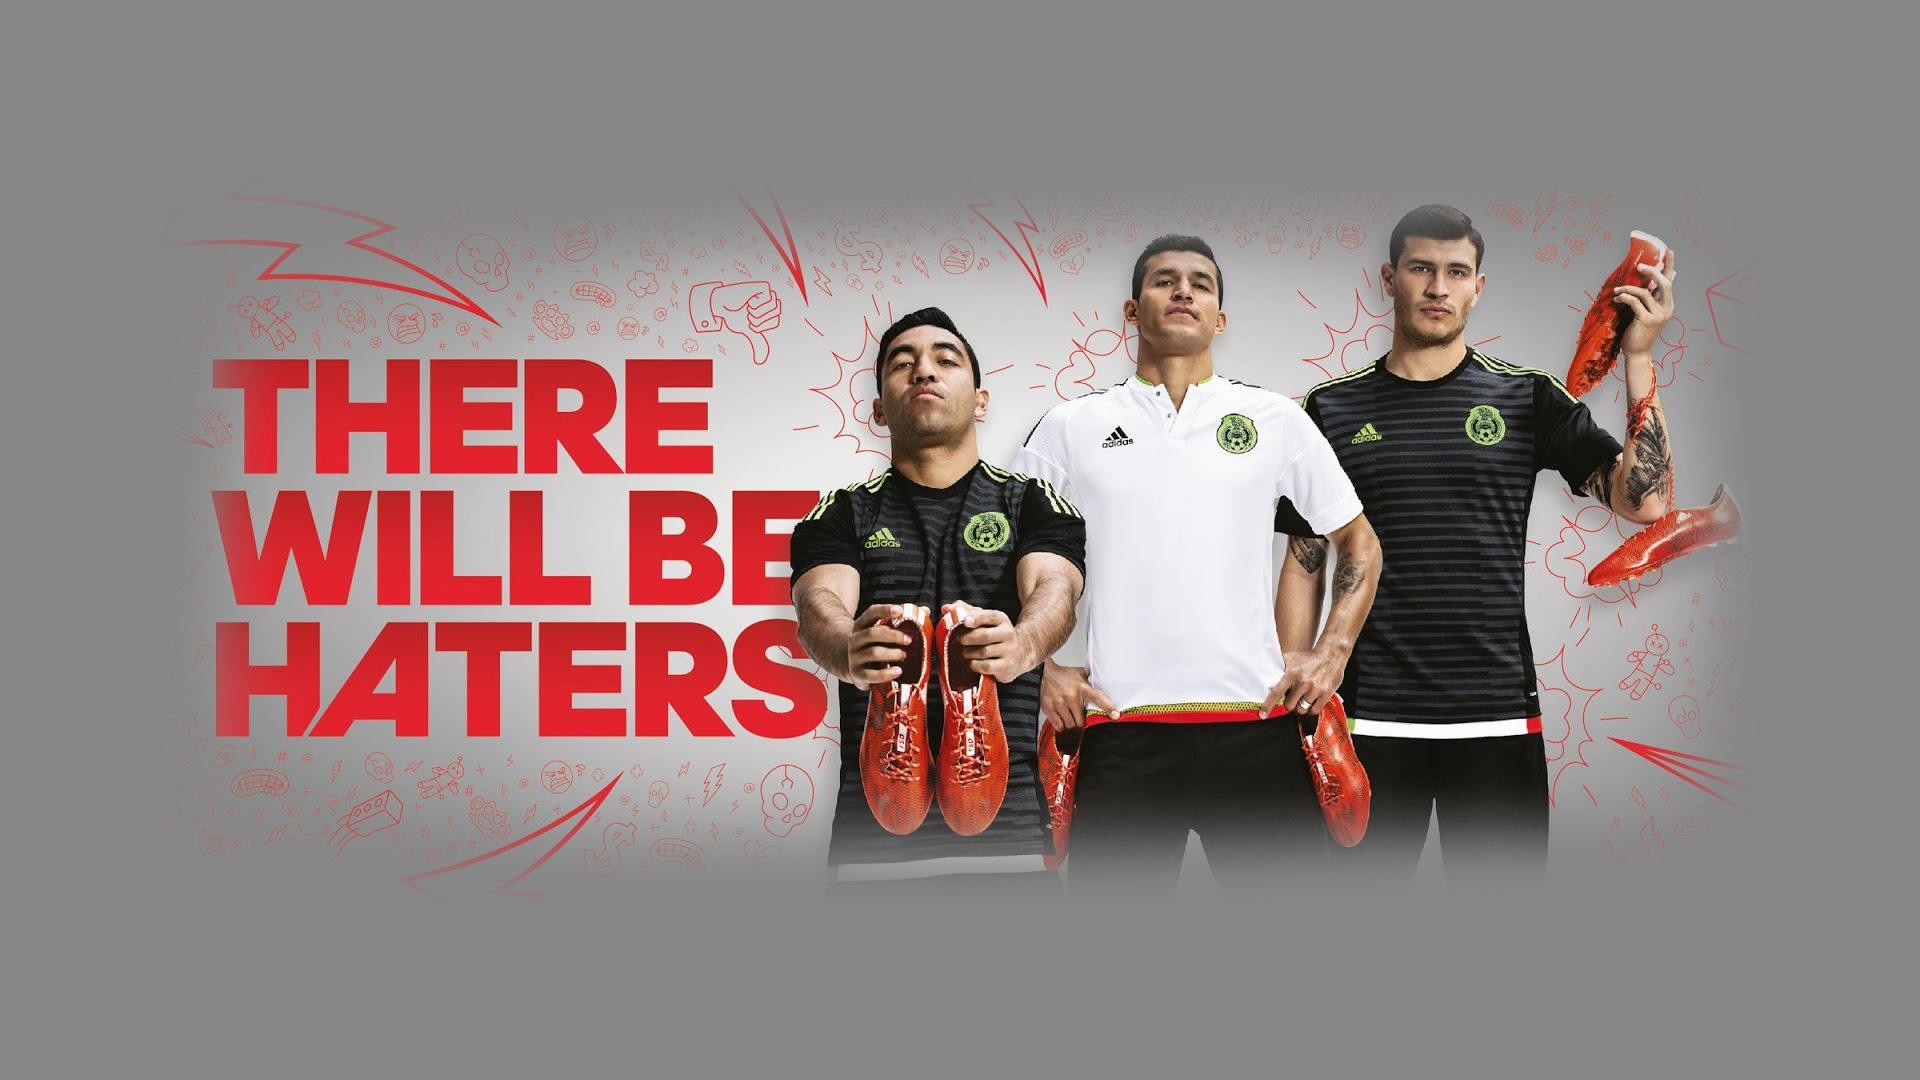 1920x1080 wallpaper.wiki-Free-Download-Cool-Soccer-Image-PIC-